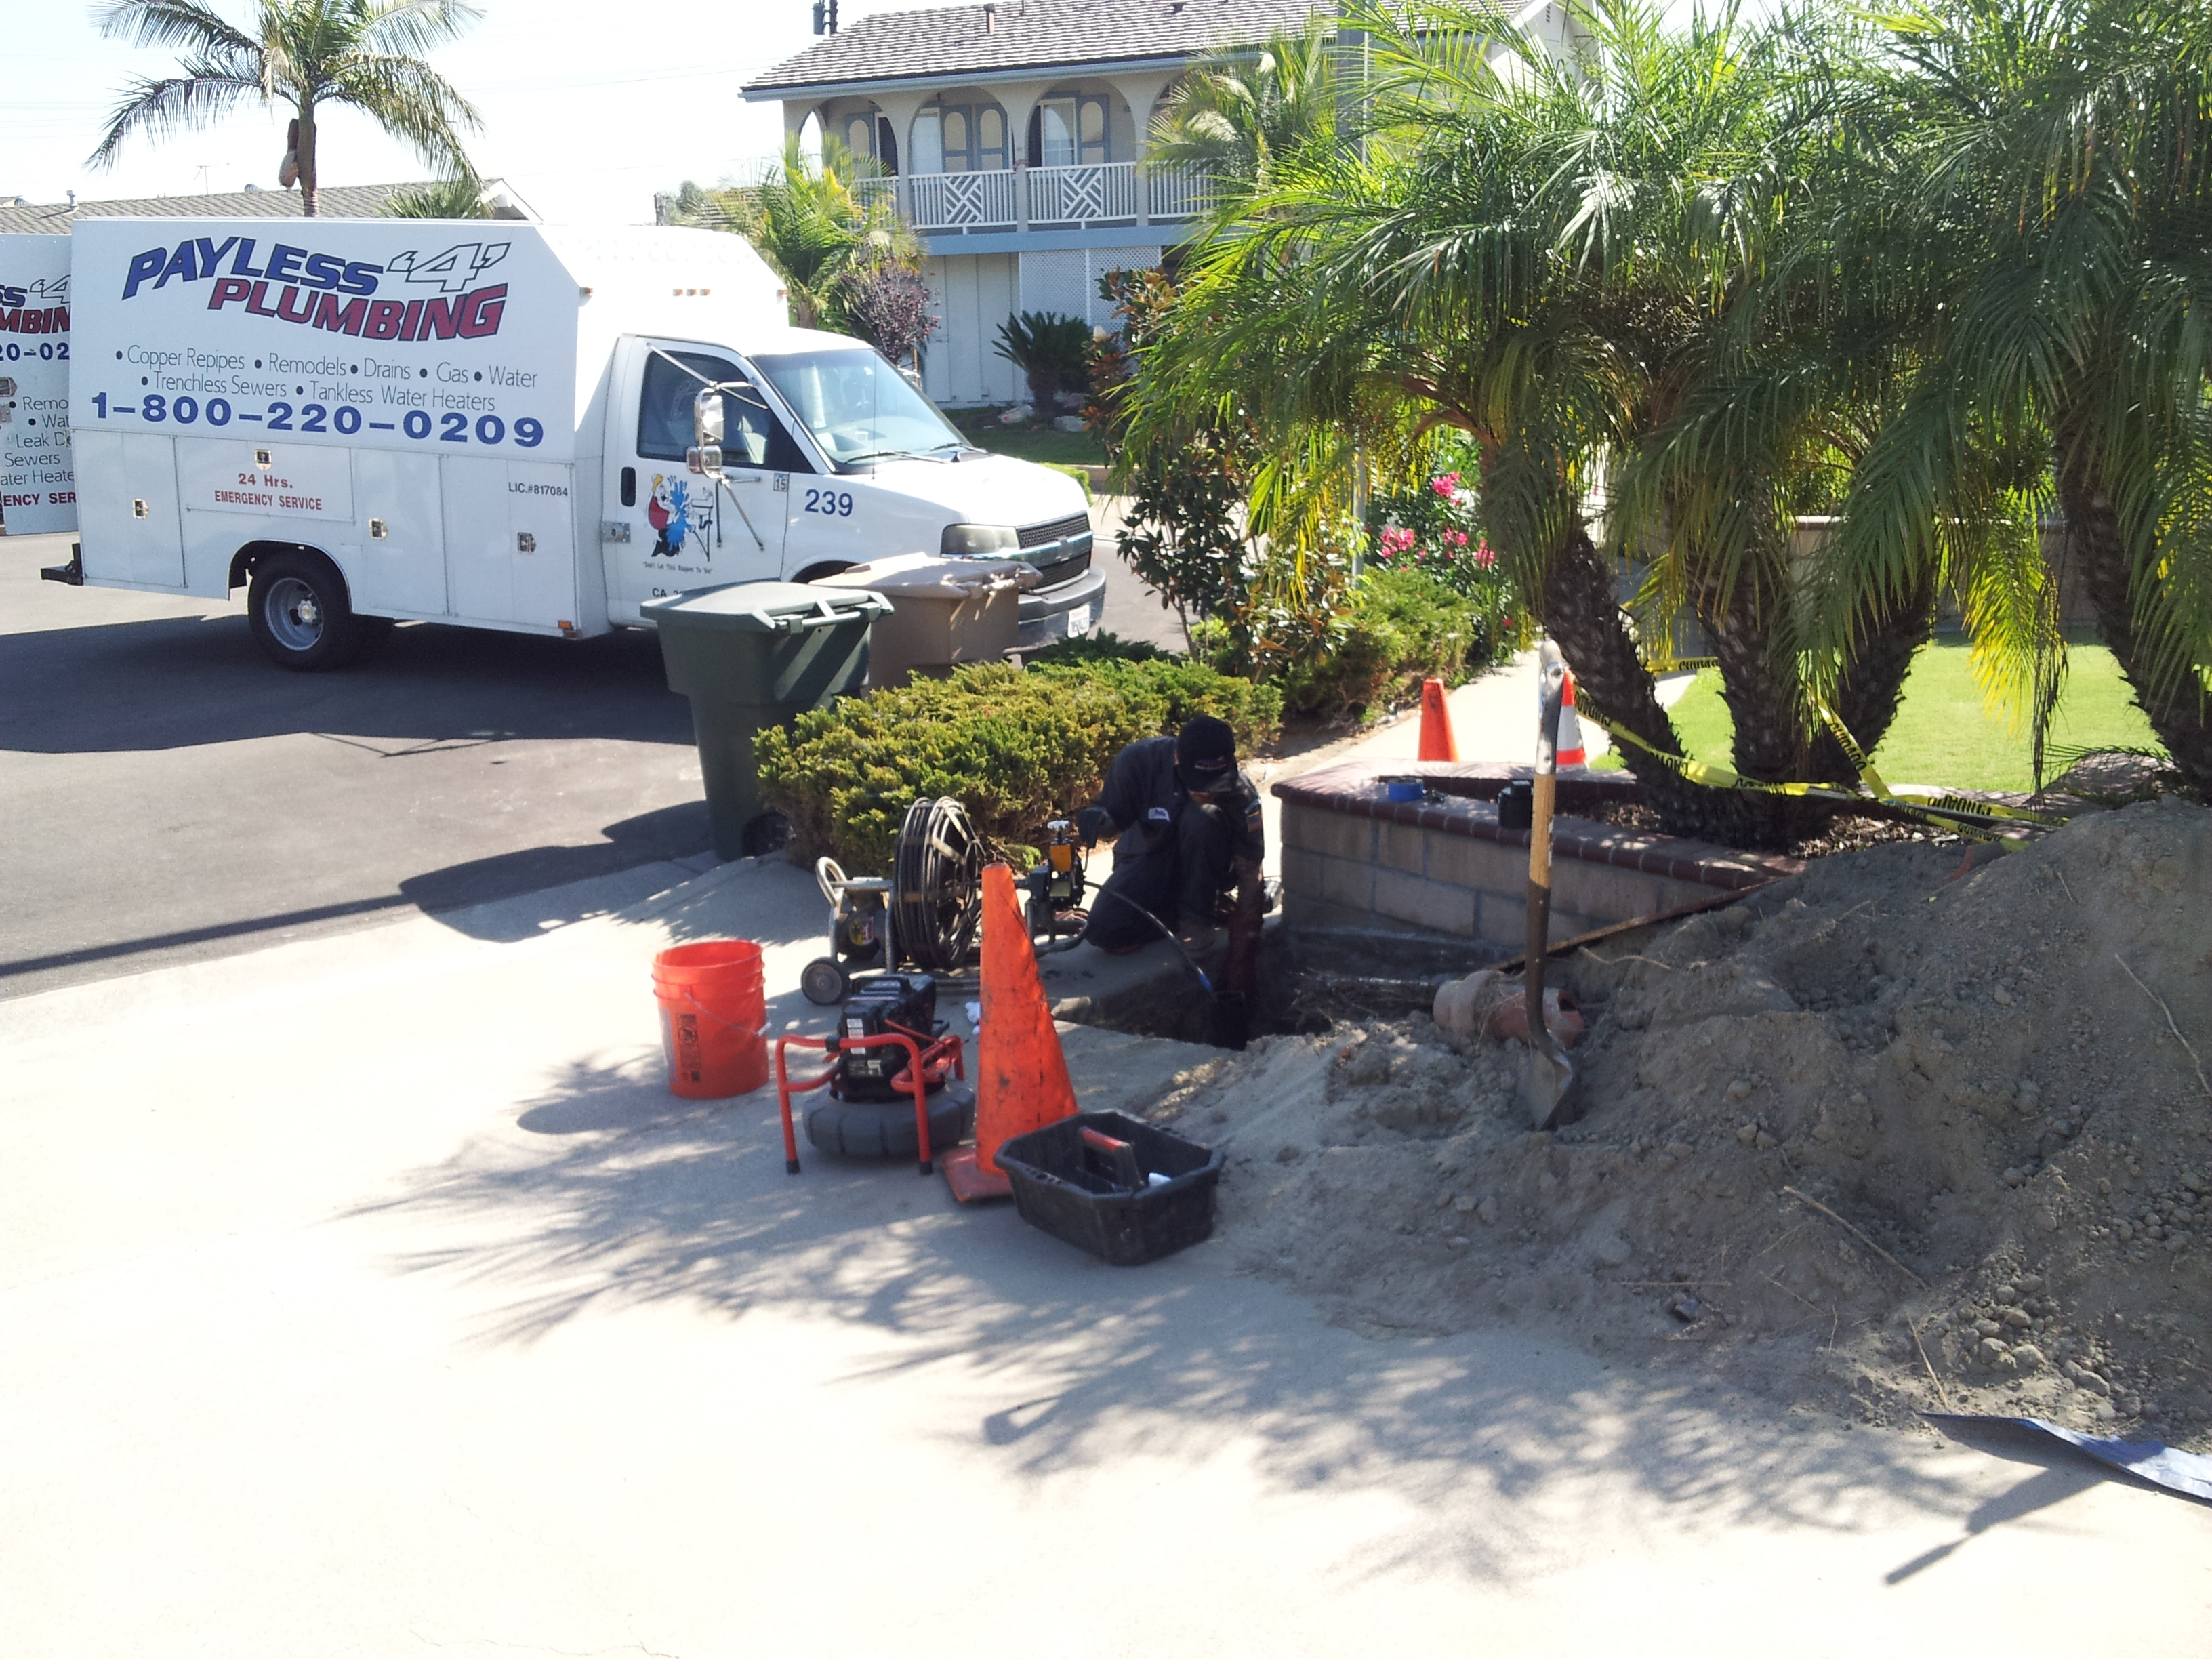 Payless 4 Plumbing, Inc. Launches its 24-Hour Plumbing Services in Bell Gardens